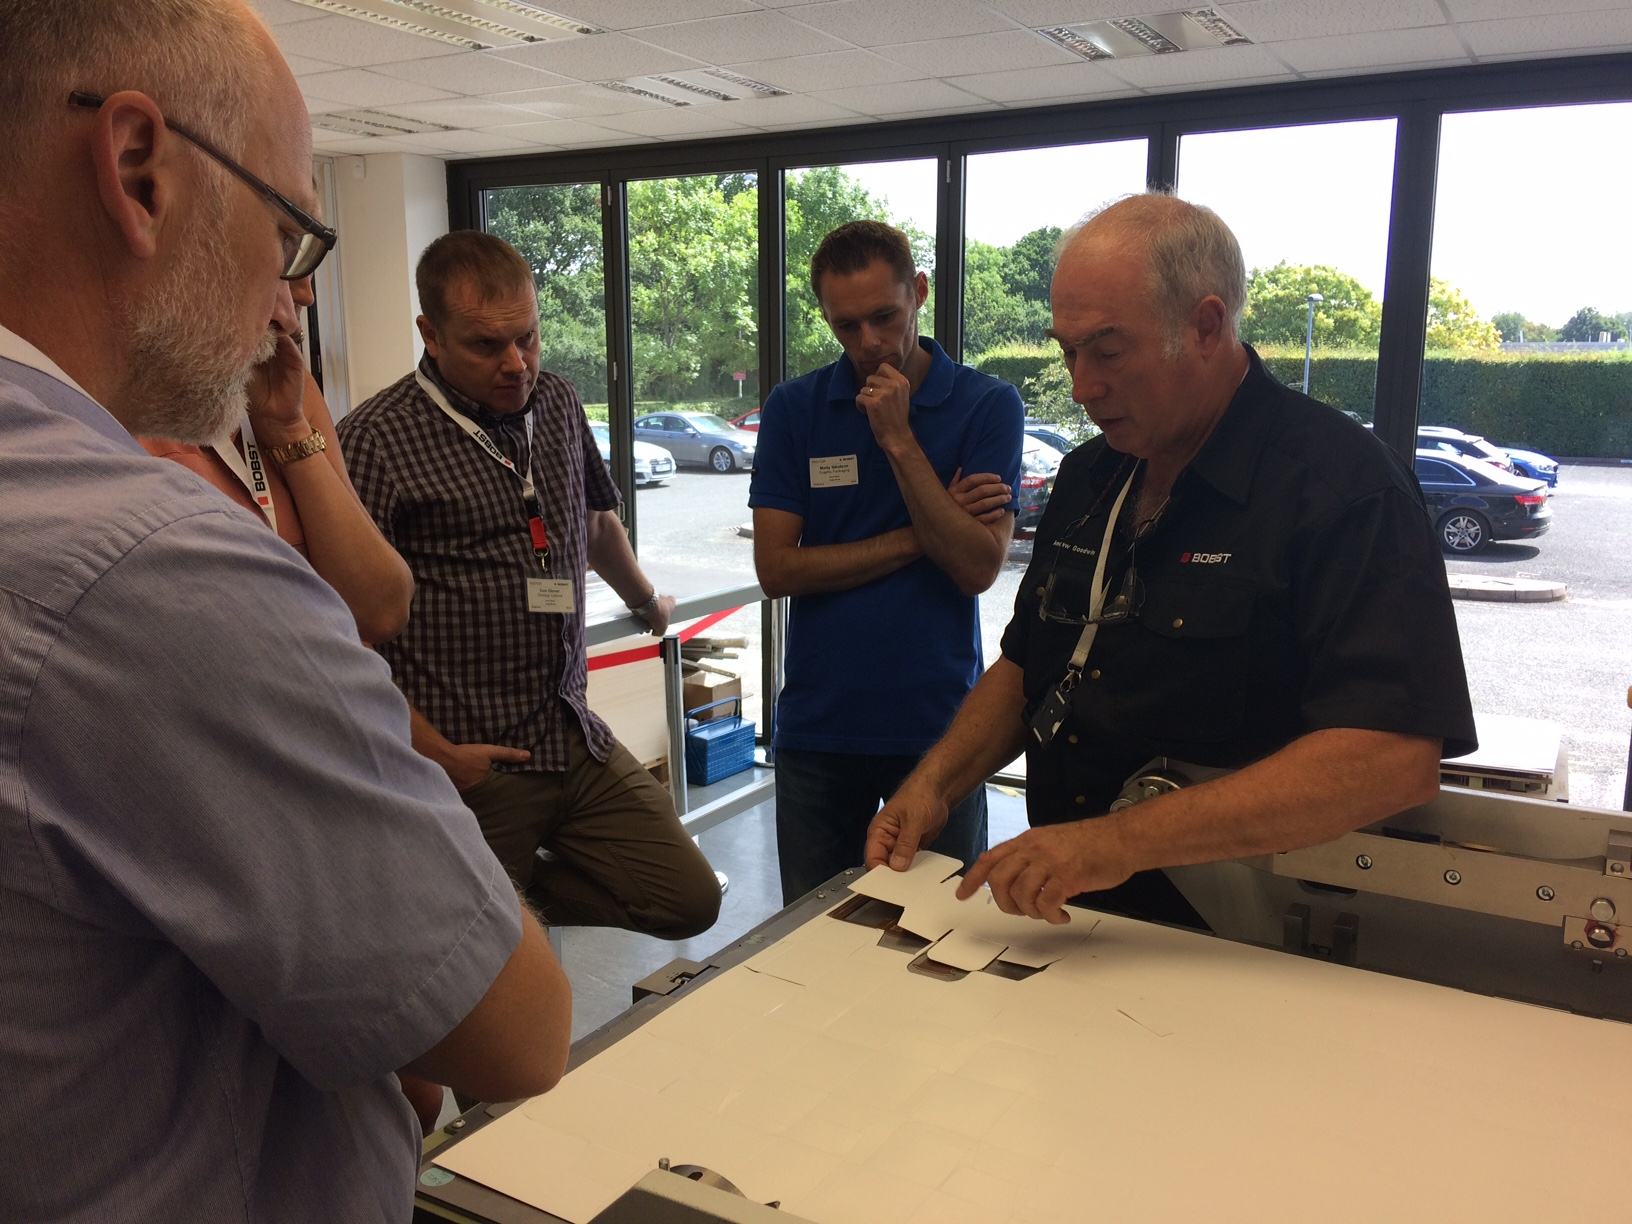 BOBST collaborates with BPIF Cartons to deliver hands-on training